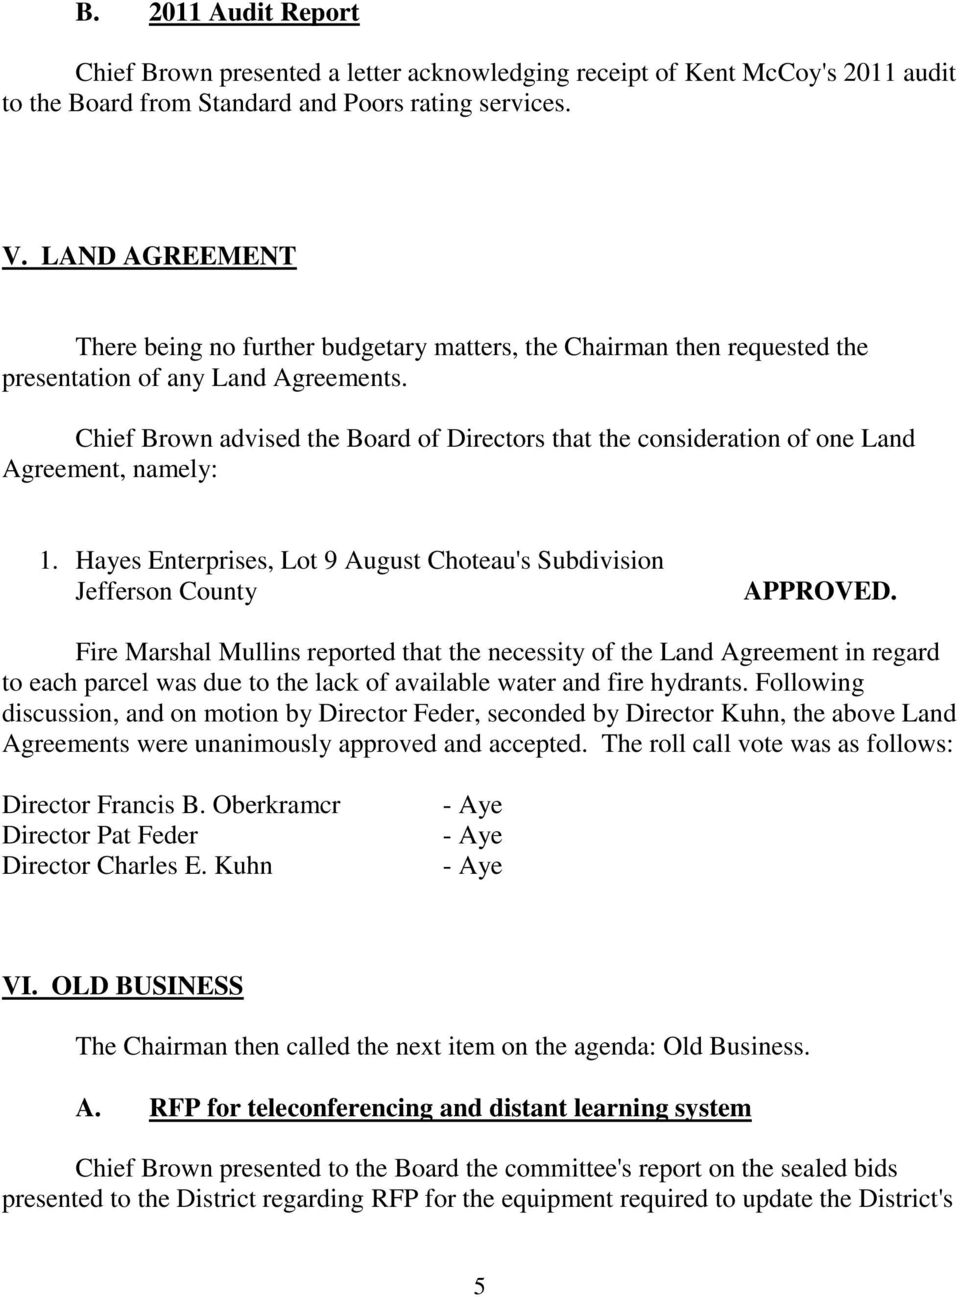 Chief Brown advised the Board of Directors that the consideration of one Land Agreement, namely: 1. Hayes Enterprises, Lot 9 August Choteau's Subdivision Jefferson County APPROVED.